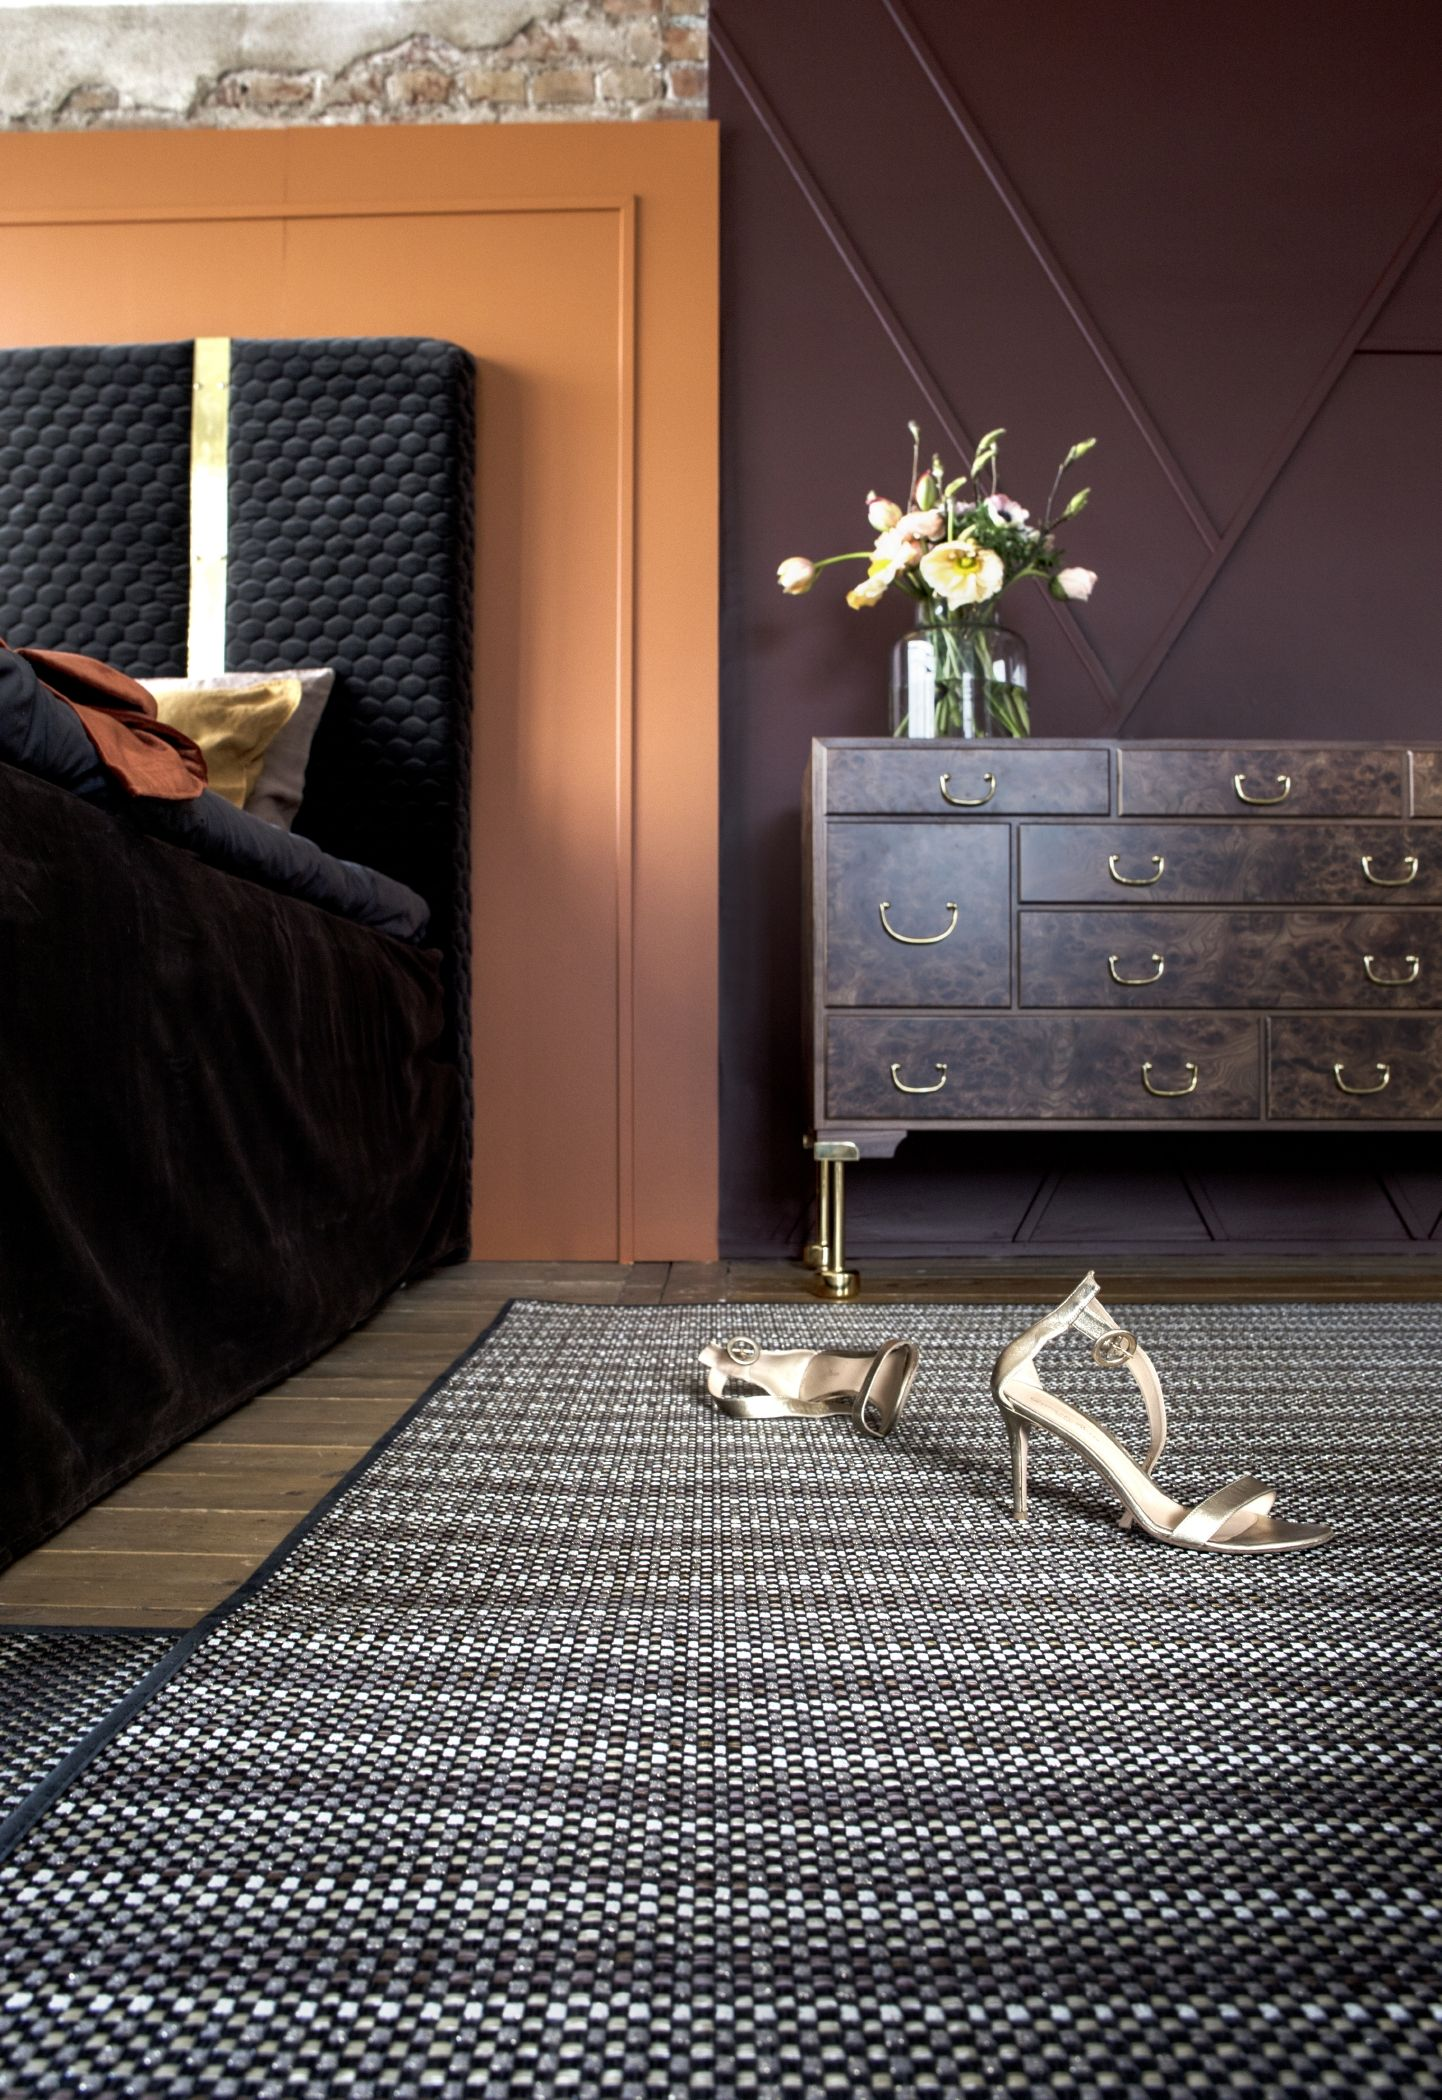 Bolon Flooring Soft Rug Collection Villa La Madonna Pee Rust